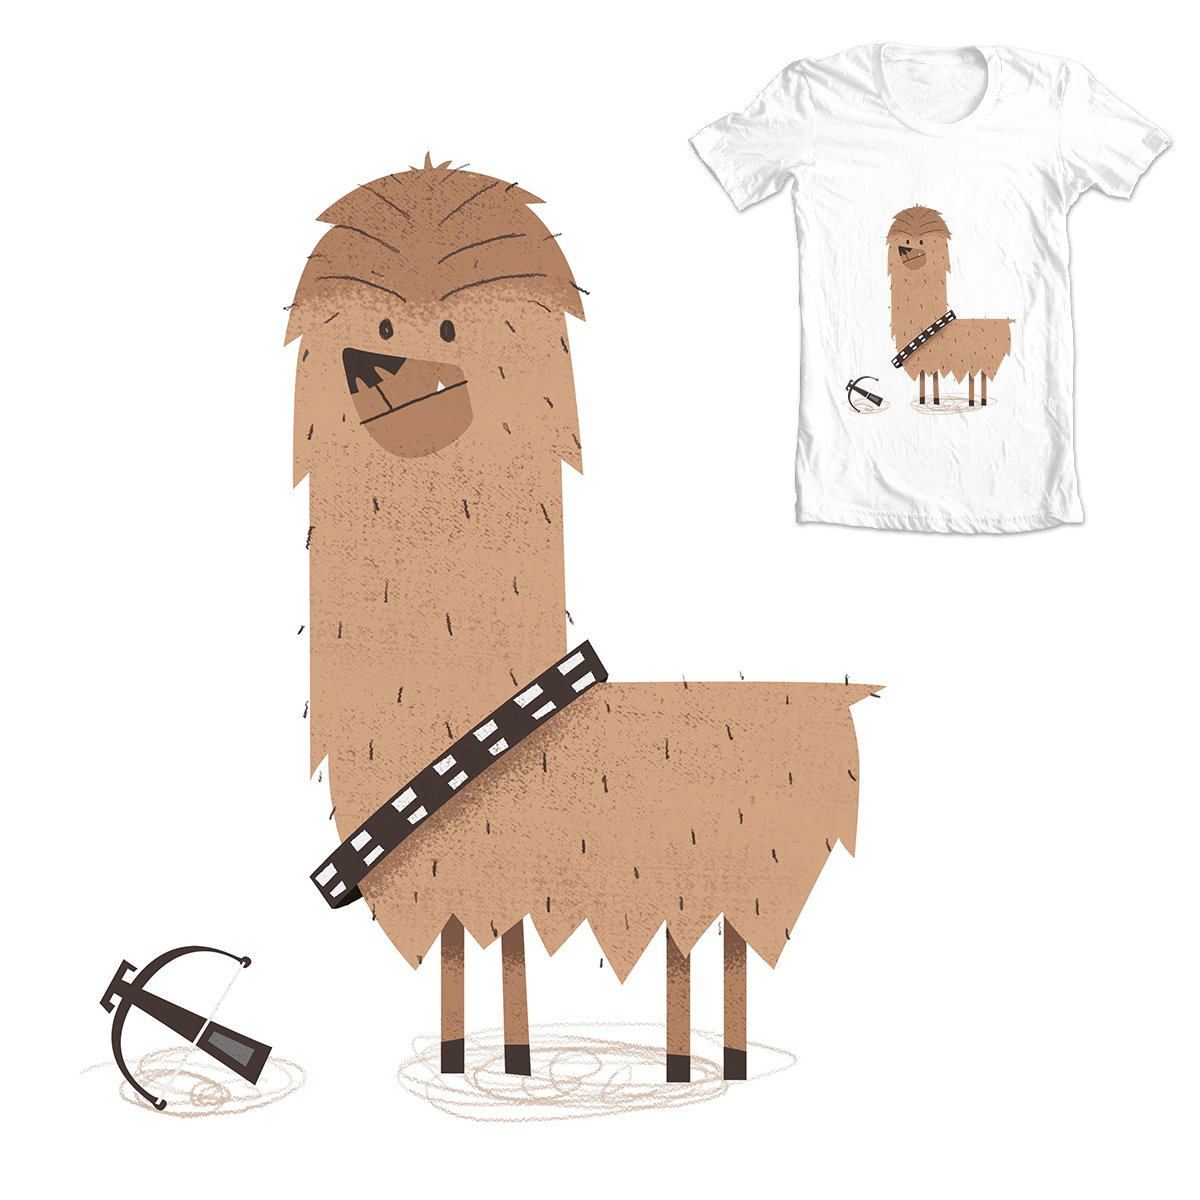 Alpaca Chewbacca Starwars Fanart Illustration